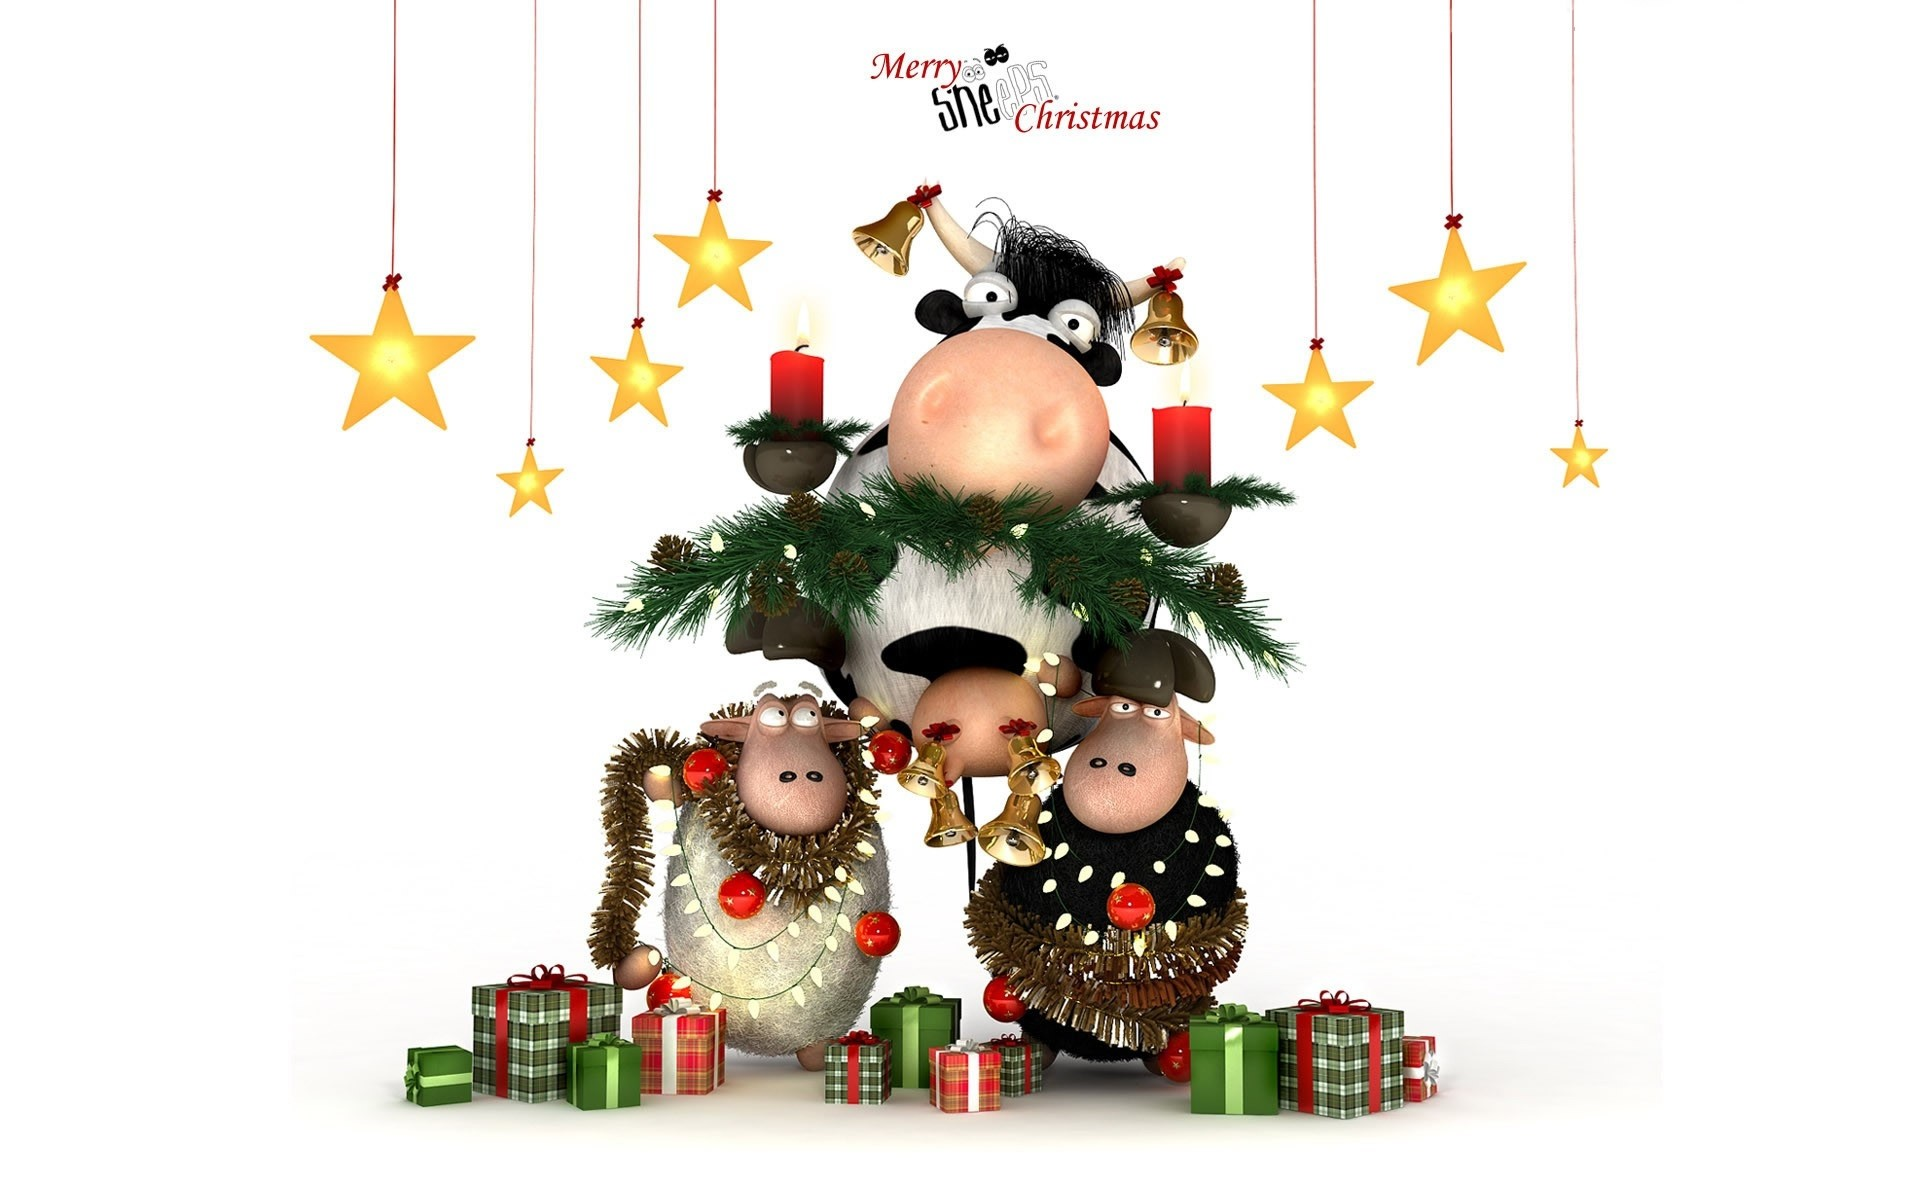 Christmas Happy Cow. iPhone wallpapers for free.